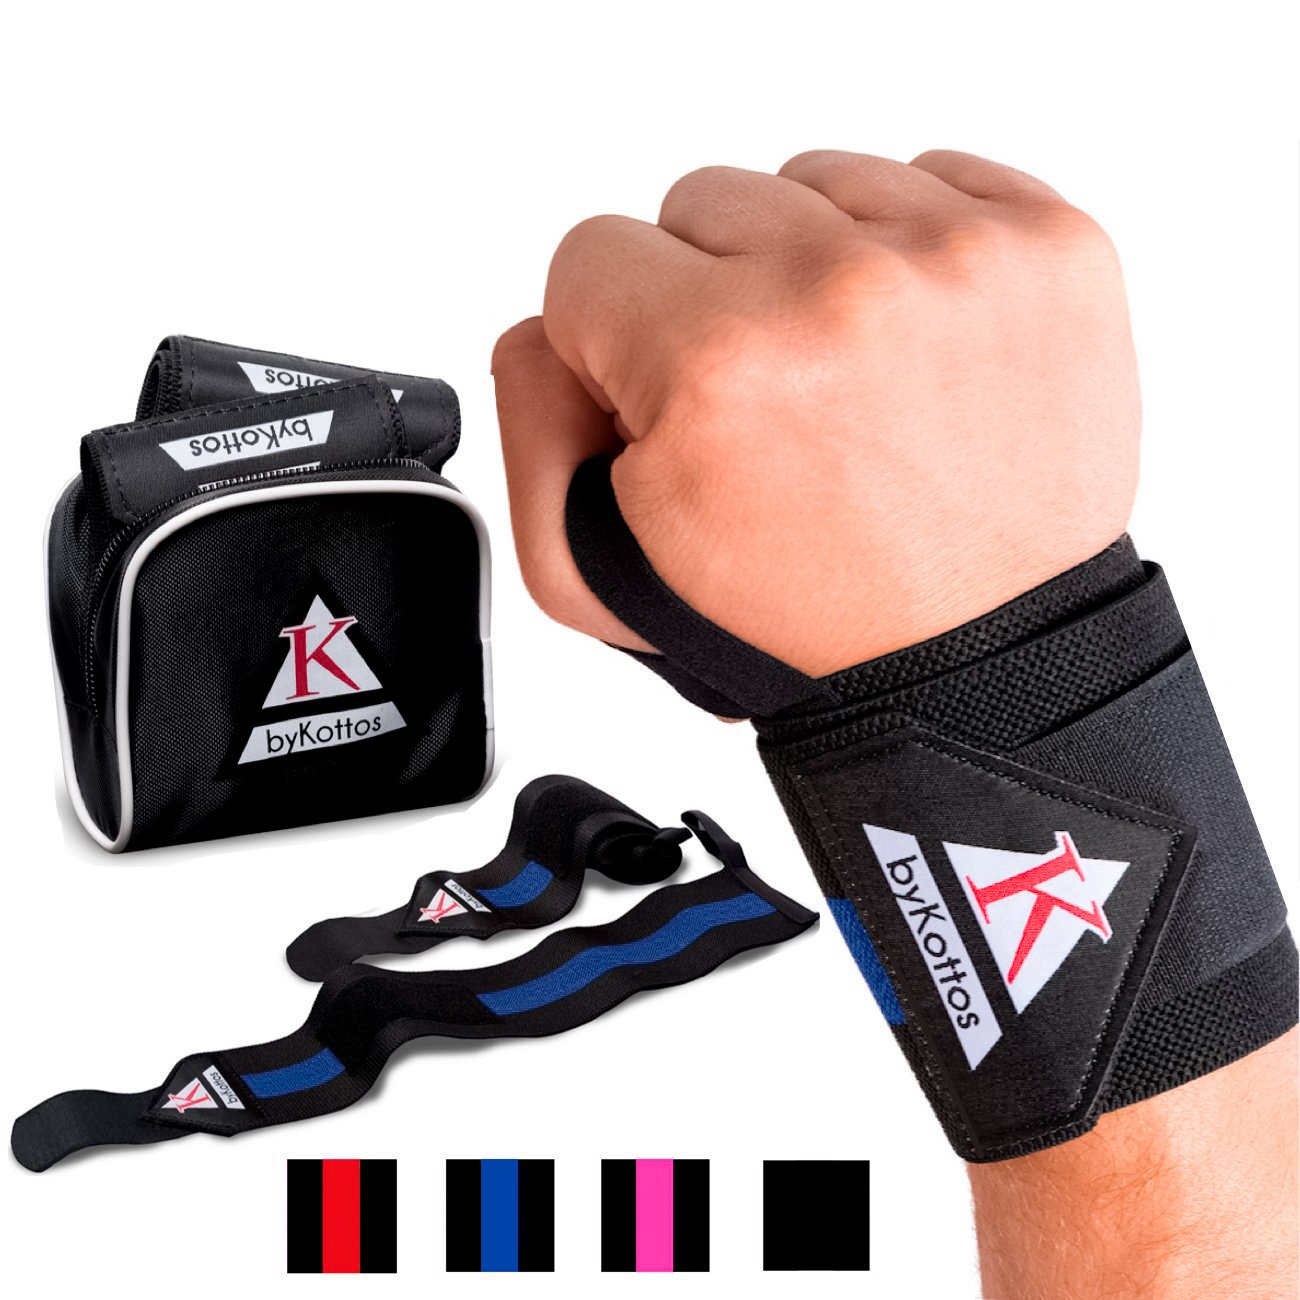 BYKOTTOS Blue Wrist Wraps Weightlifting Fitness Wrist Straps, Heavy Duty Wrist Bands, Wrist Support Braces, Bodybuilding Weight Lifting Powerlifting Crossfit Gym Heavy Training, Carpal Tunnel